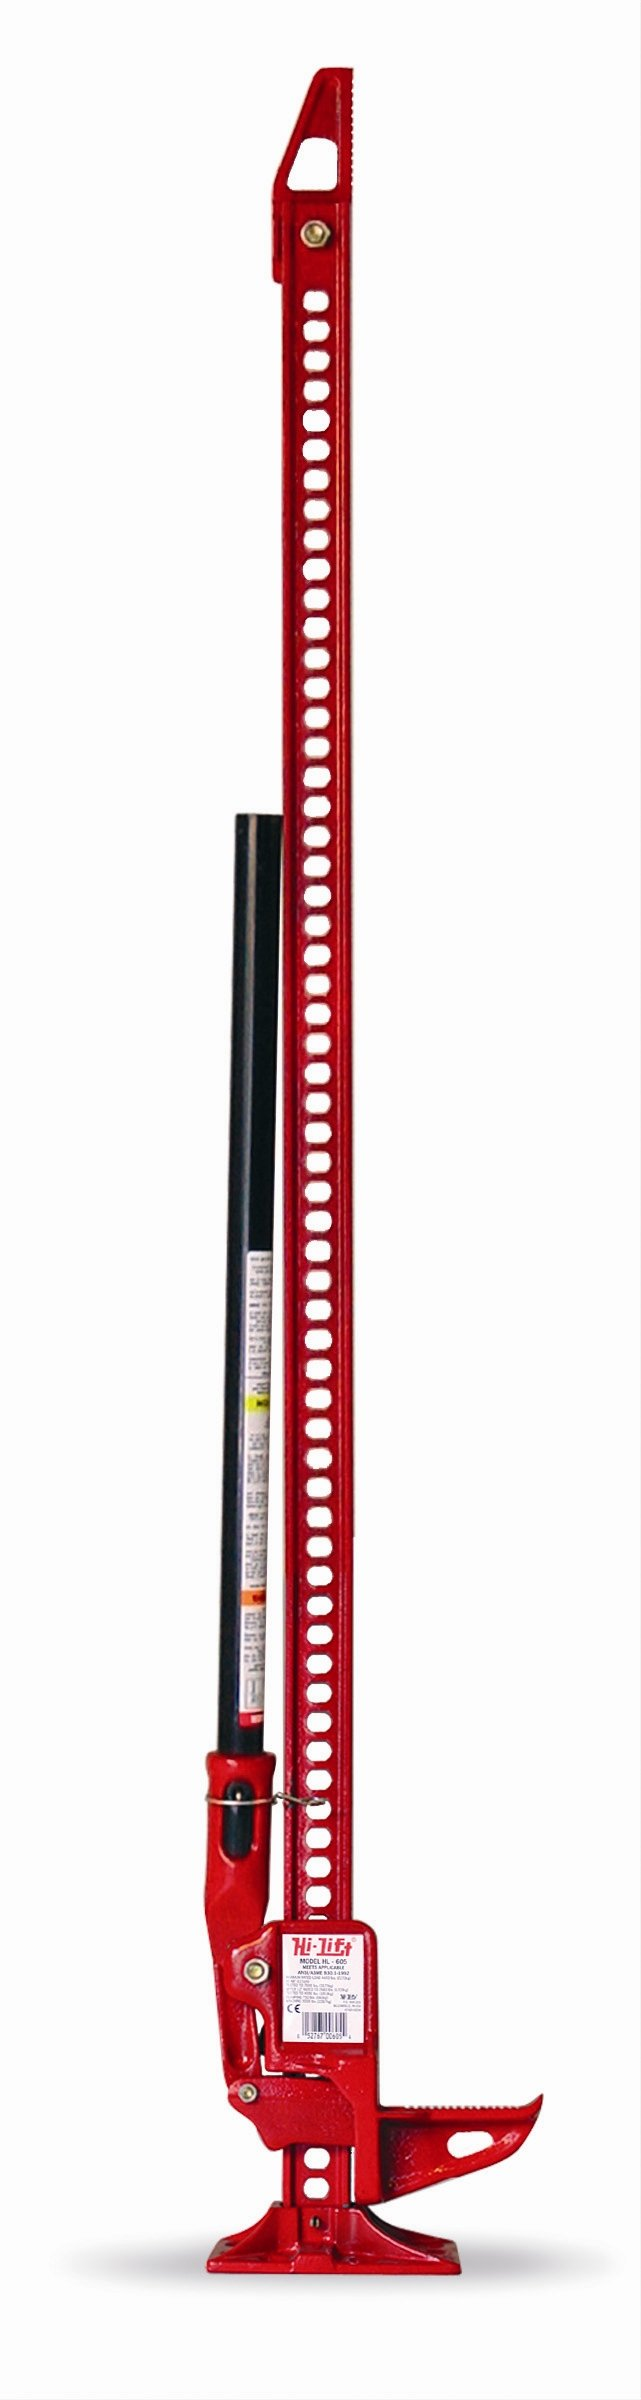 Hi-Lift Jack HL485 48'' Red All Cast Jack